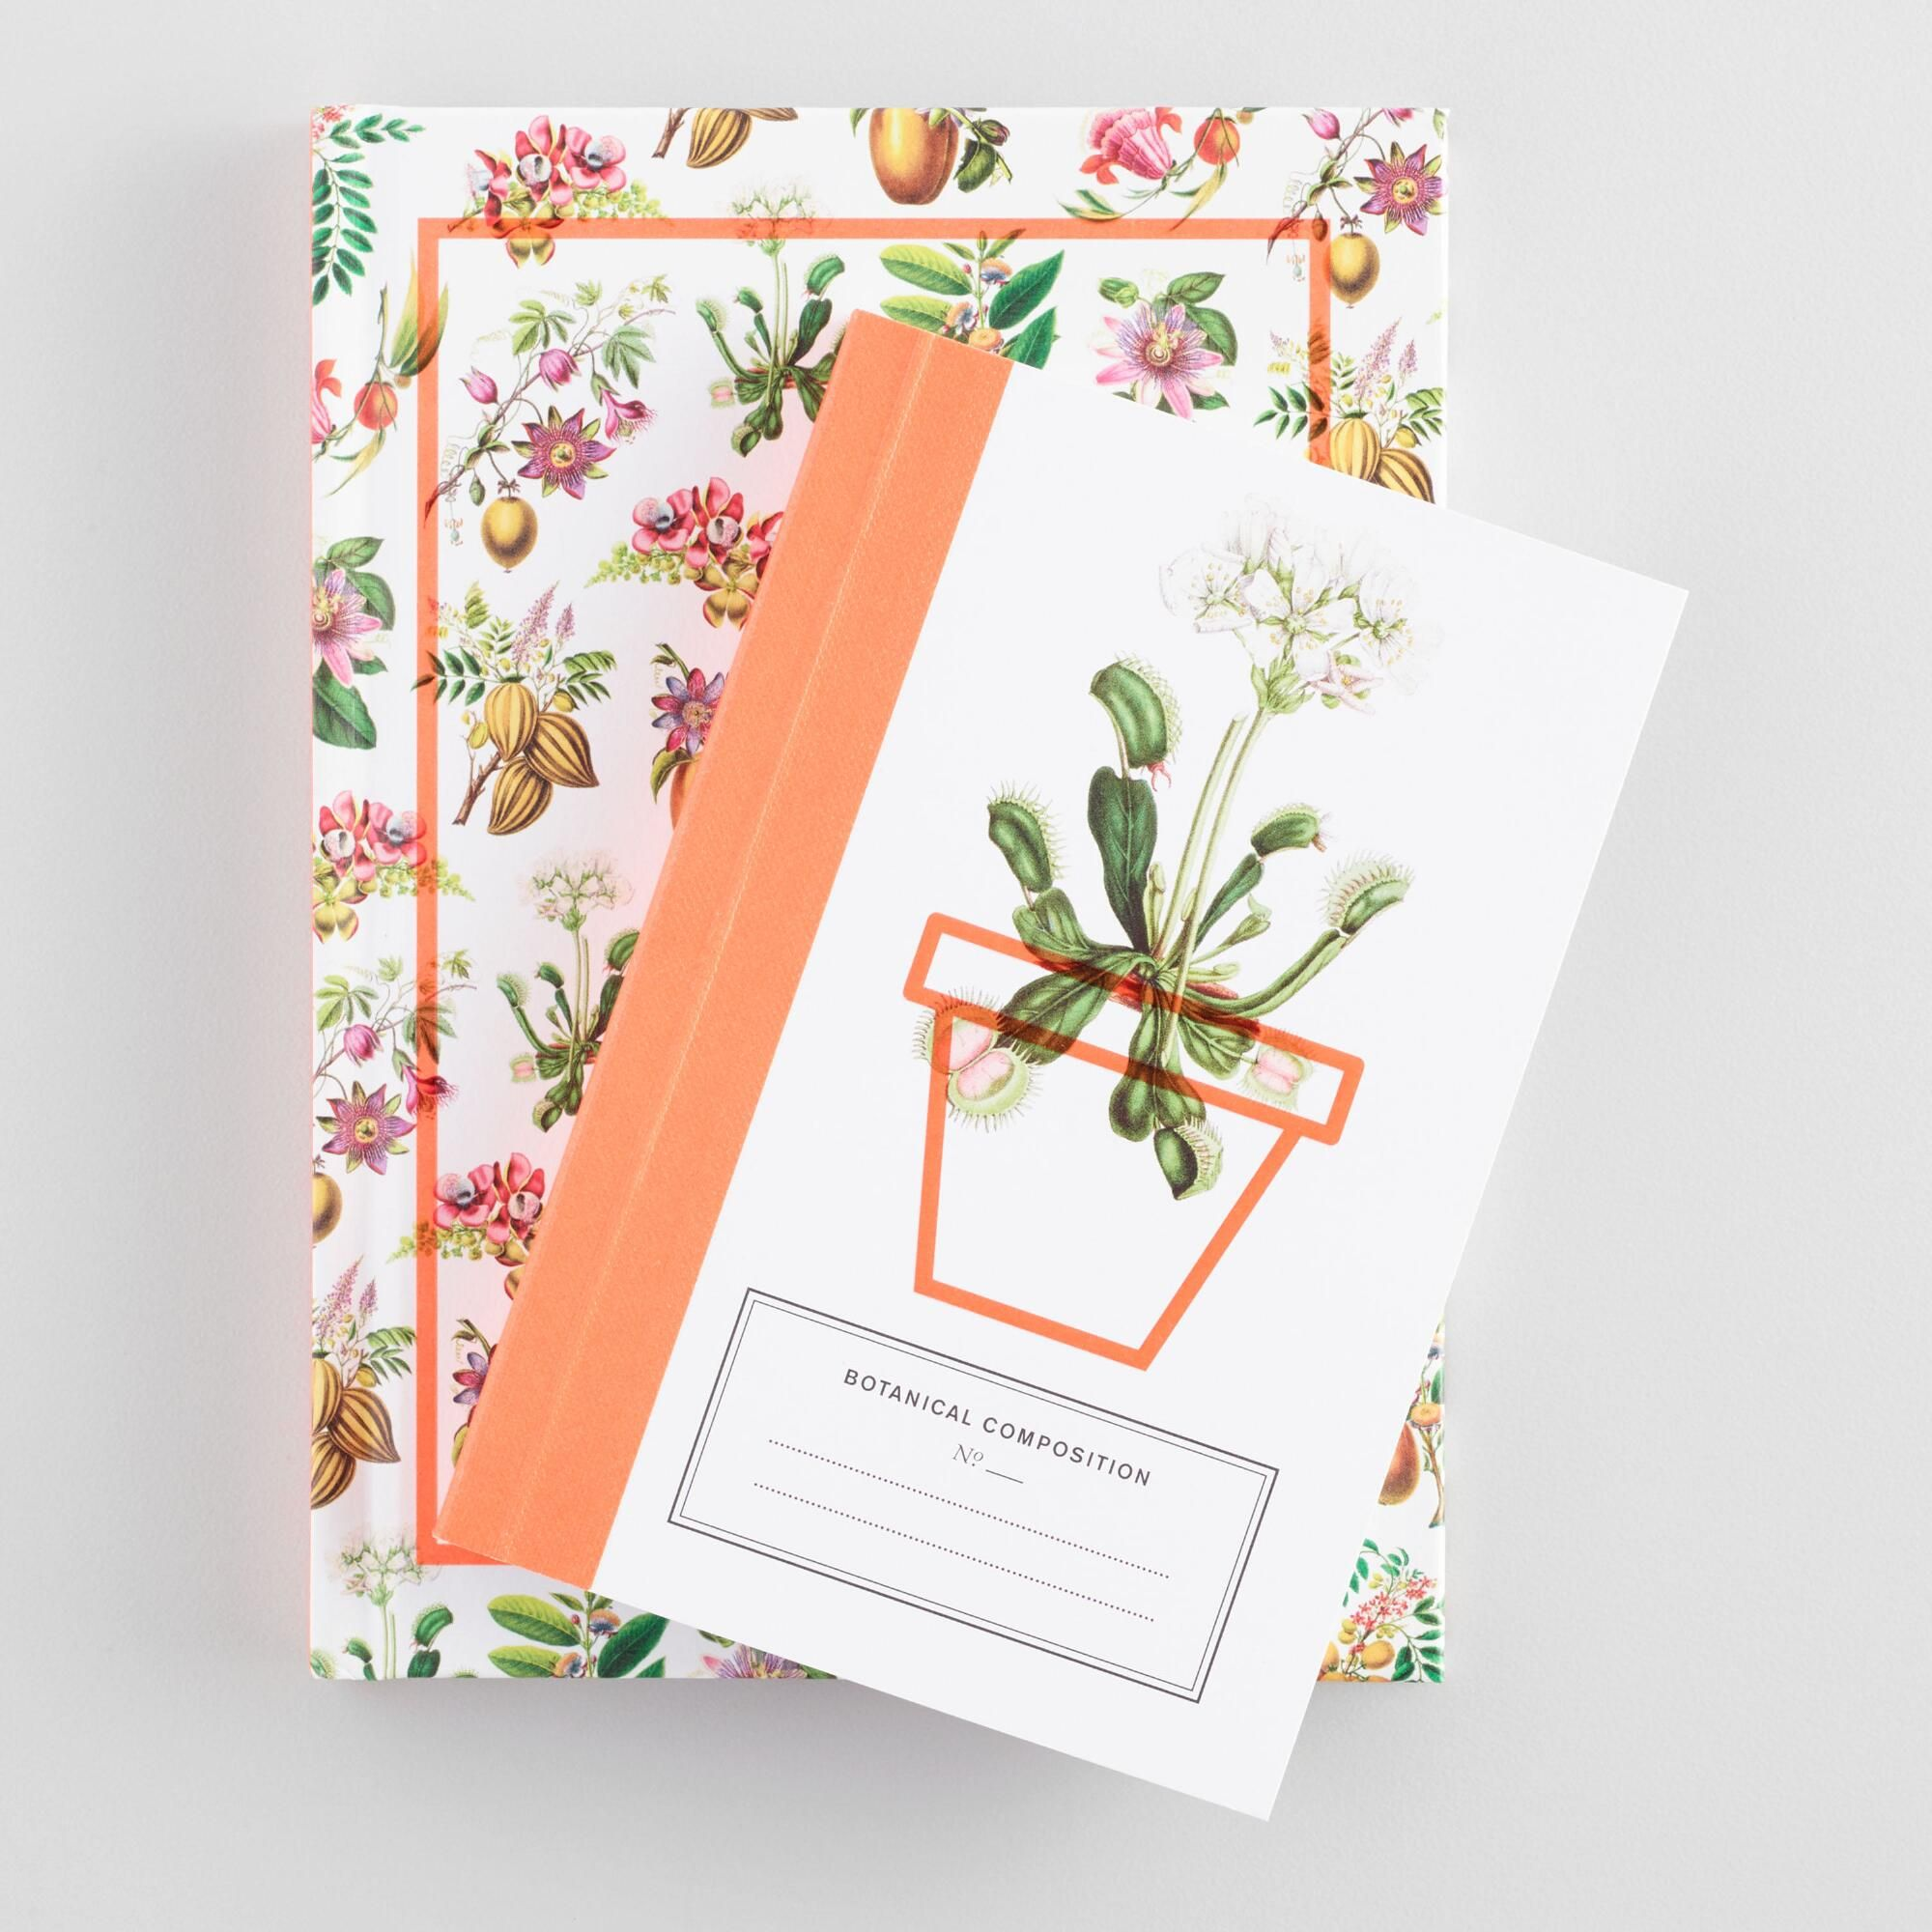 Botanical composition notebooks set of 2 by world market botanical composition notebooks set of 2 by world market m4hsunfo